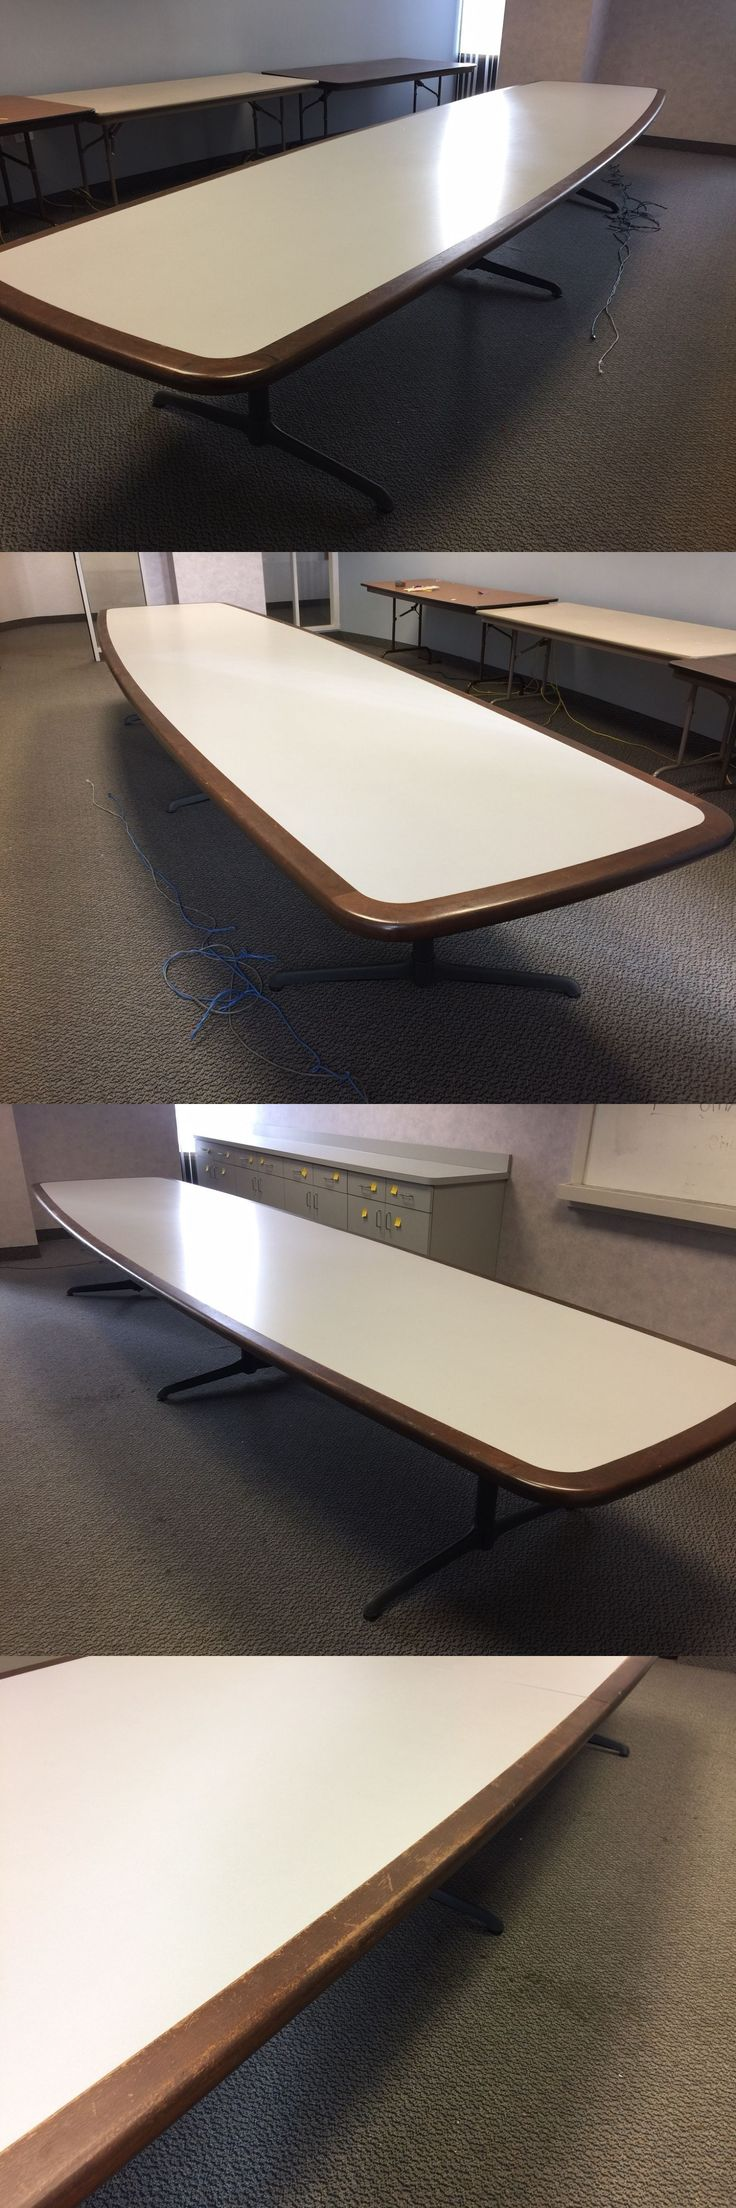 Office Furniture: 15Ft Oval Shape Conference Table By Steelcase Office Furniture -> BUY IT NOW ONLY: $450 on eBay!